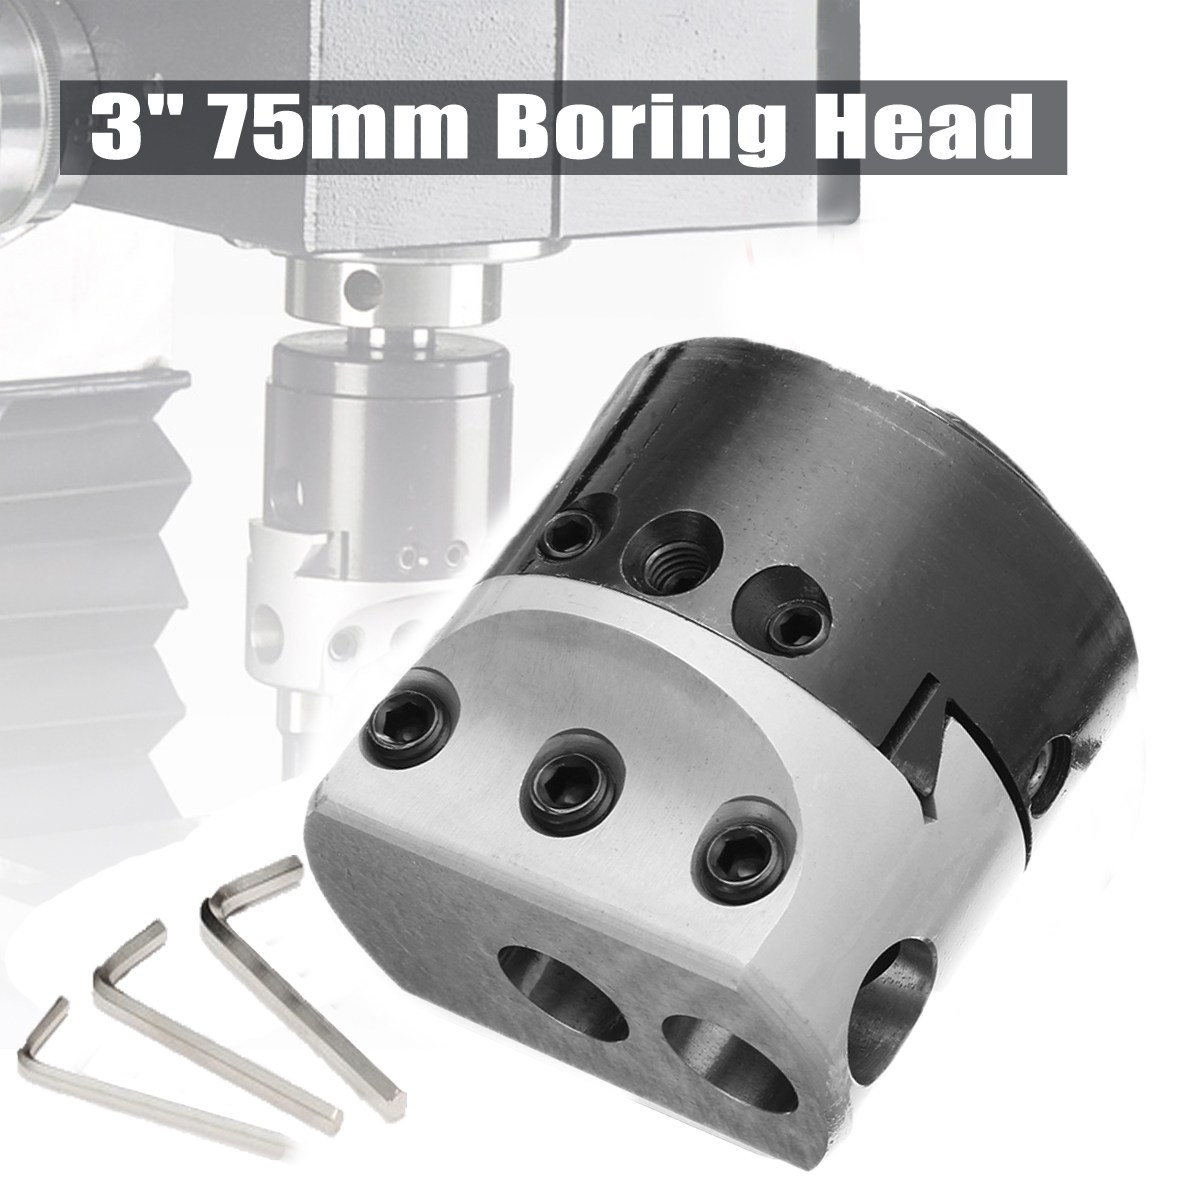 High Quality 3'' 75mm Boring Head Milling Tool with 3pcs Wrench For 18mm Hole Boring Cutter p80 panasonic super high cost complete air cutter torches torch head body straigh machine arc starting 12foot